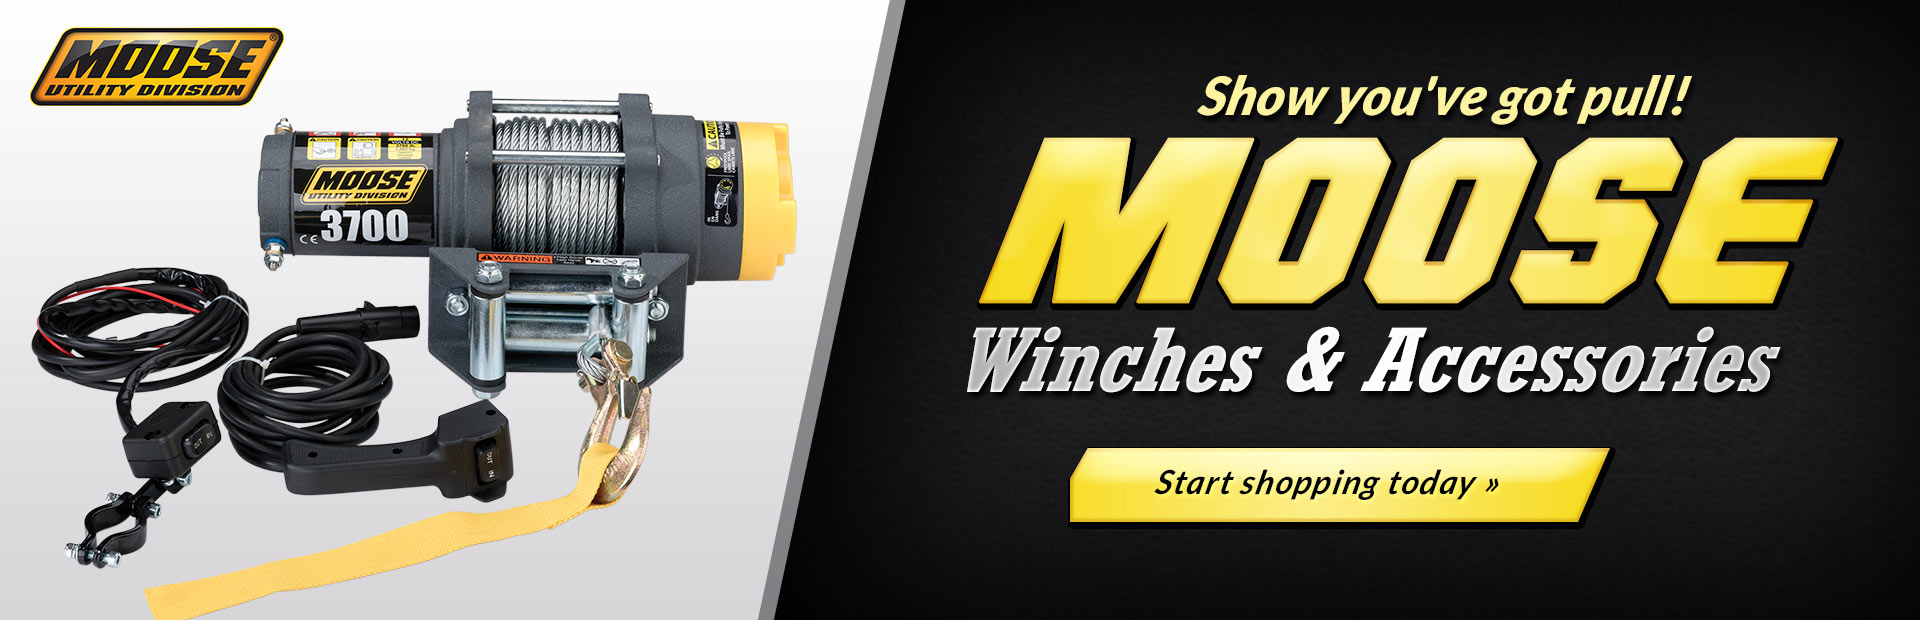 Moose Winches & Accessories: Click here to shop online.